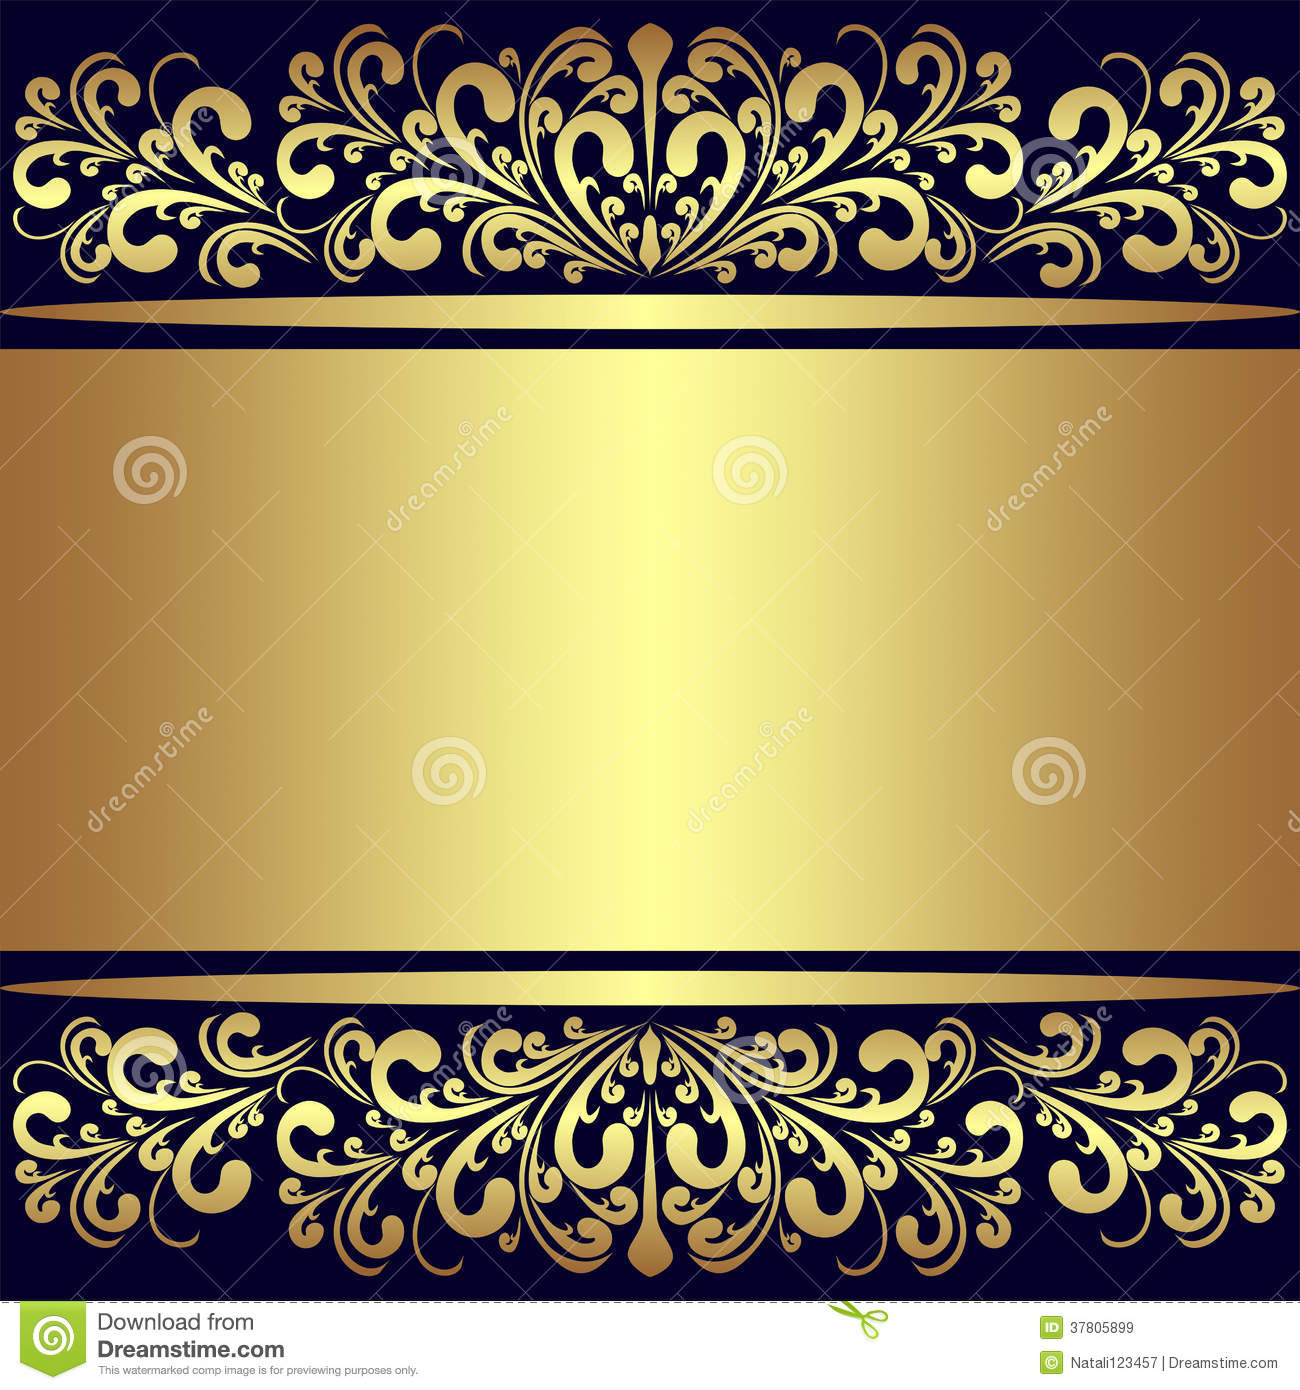 Luxury Background With Golden Royal Borders. Royalty Free Stock.